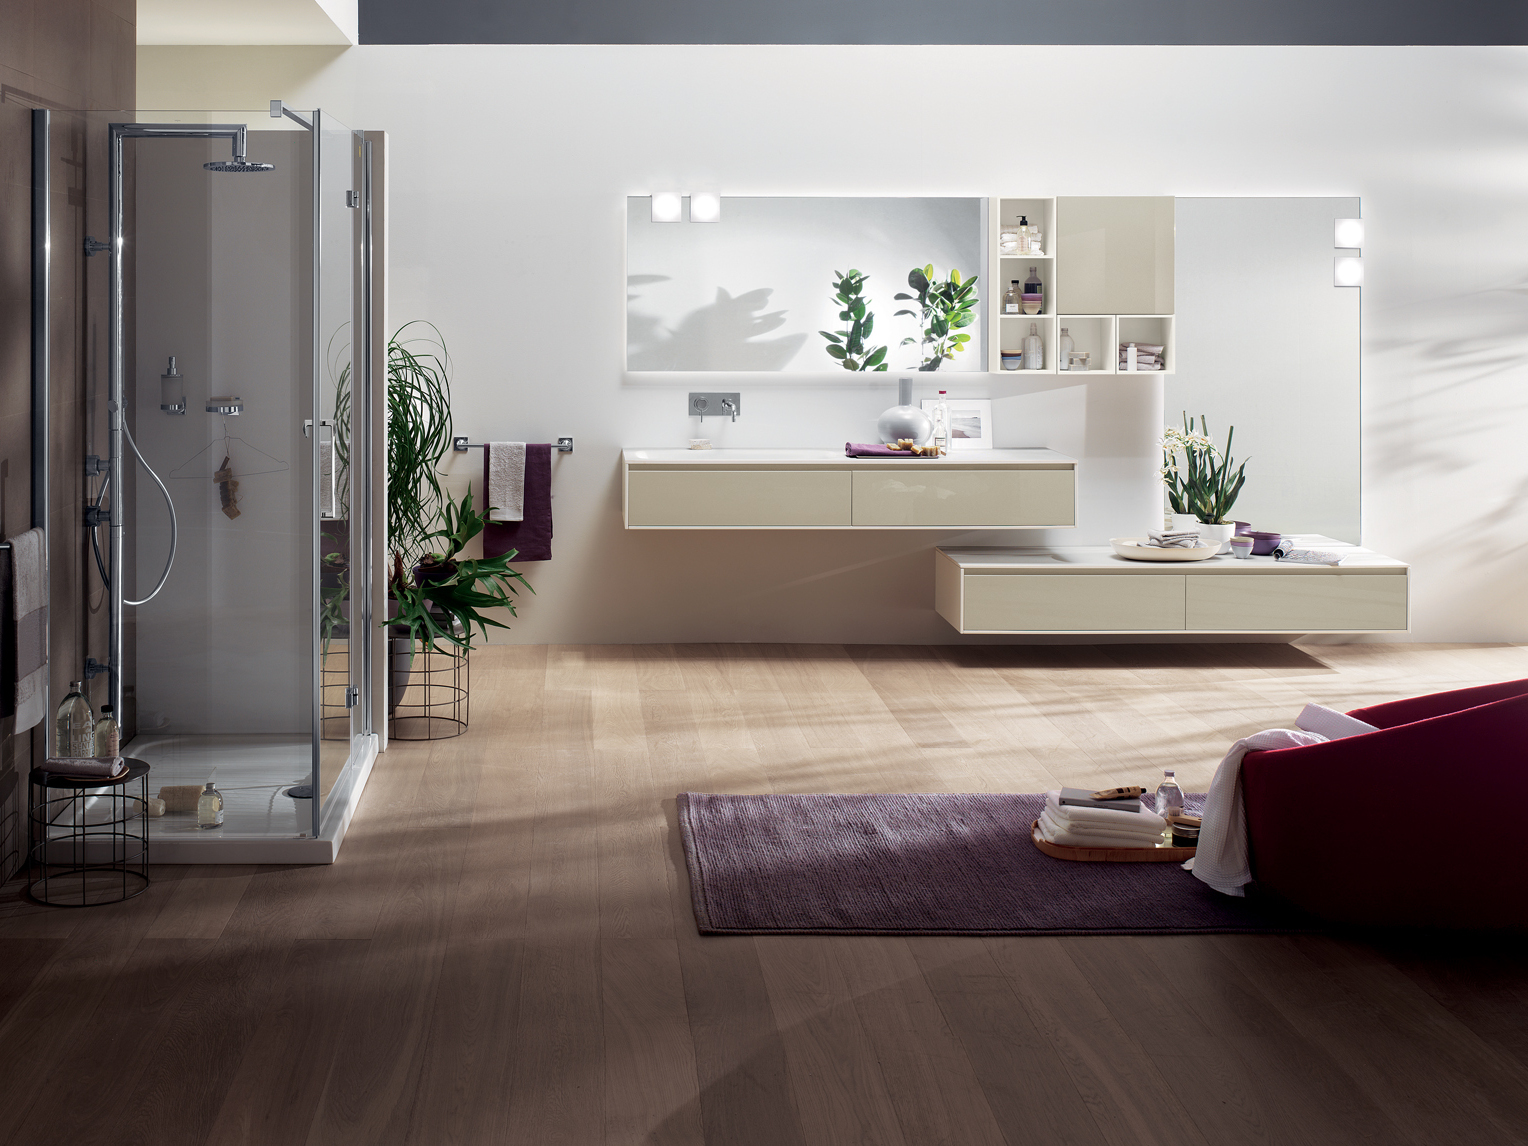 Arredo bagno completo rivo by scavolini bathrooms design for Bagno grande